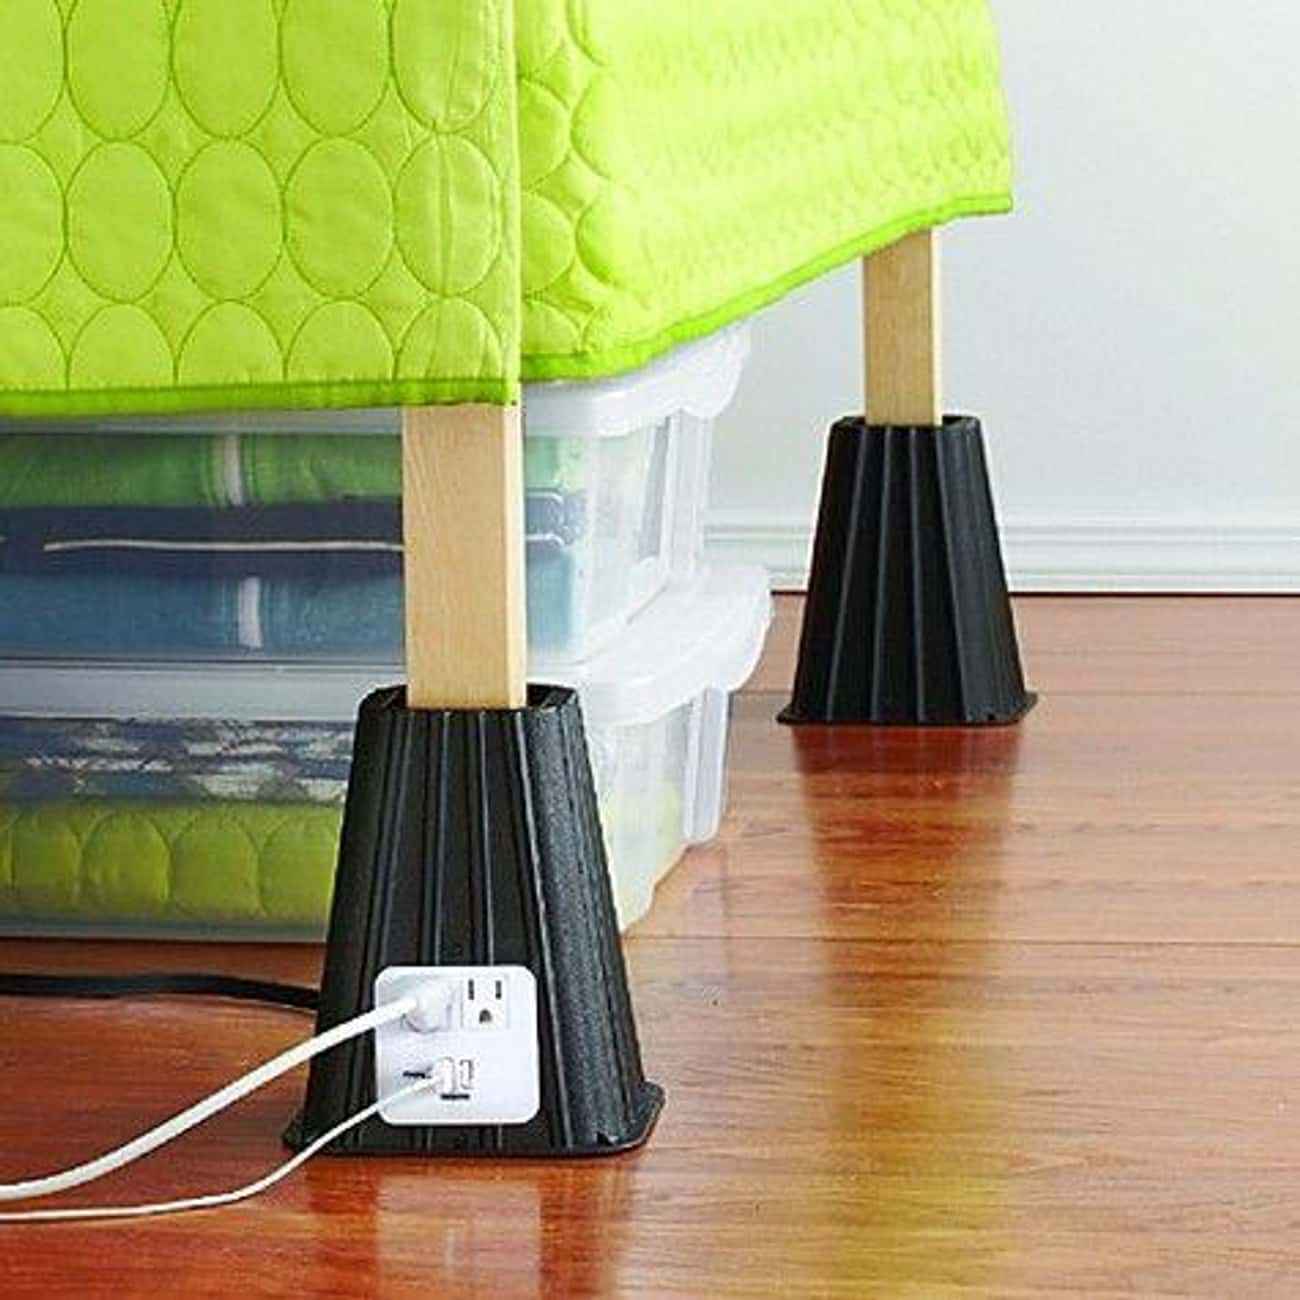 Bed Lifts is listed (or ranked) 4 on the list Dorm Decorating Hacks To Improve A Tiny Room On A Budget